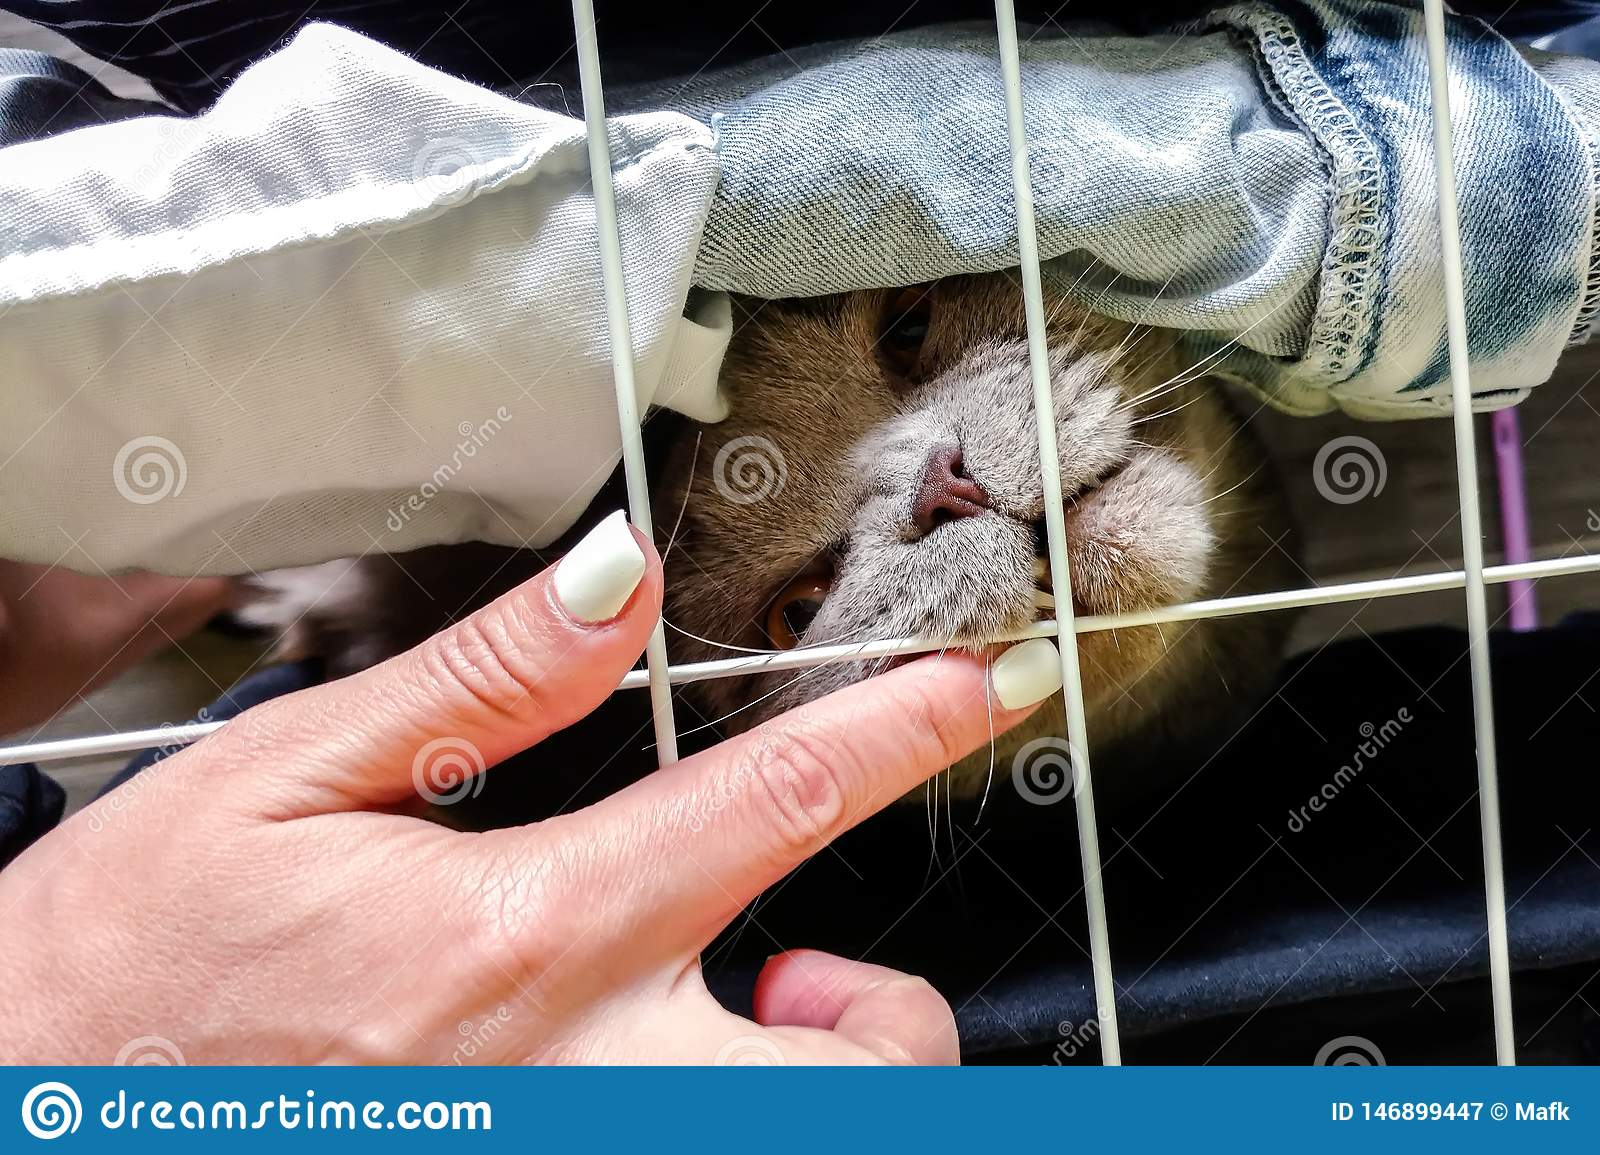 Scottish Fold cat bites a finger throug a net. Top view